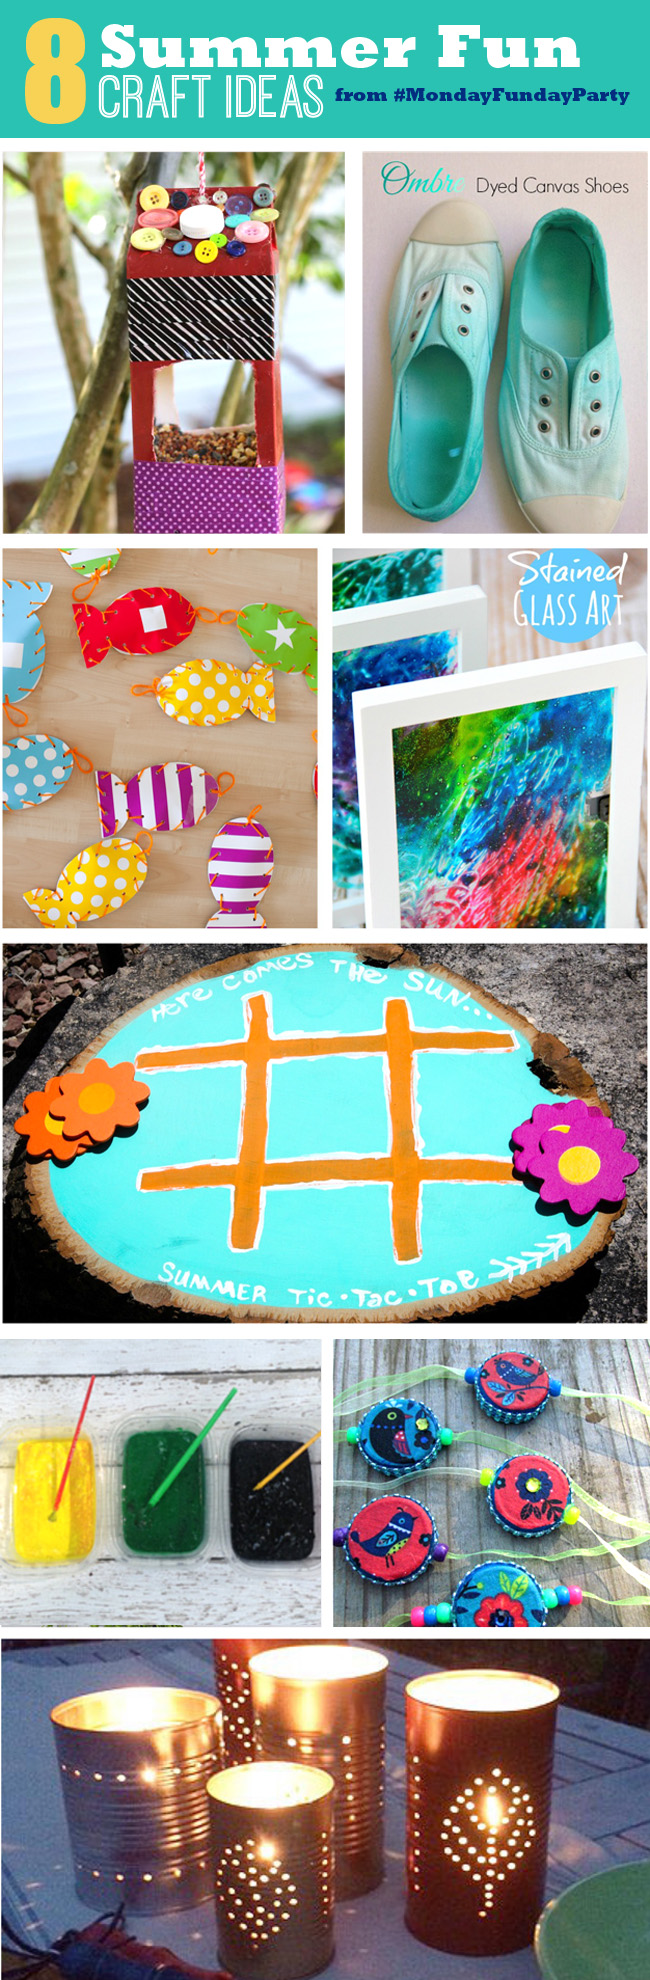 8 Summer Fun Craft Ideas #MondayFundayParty